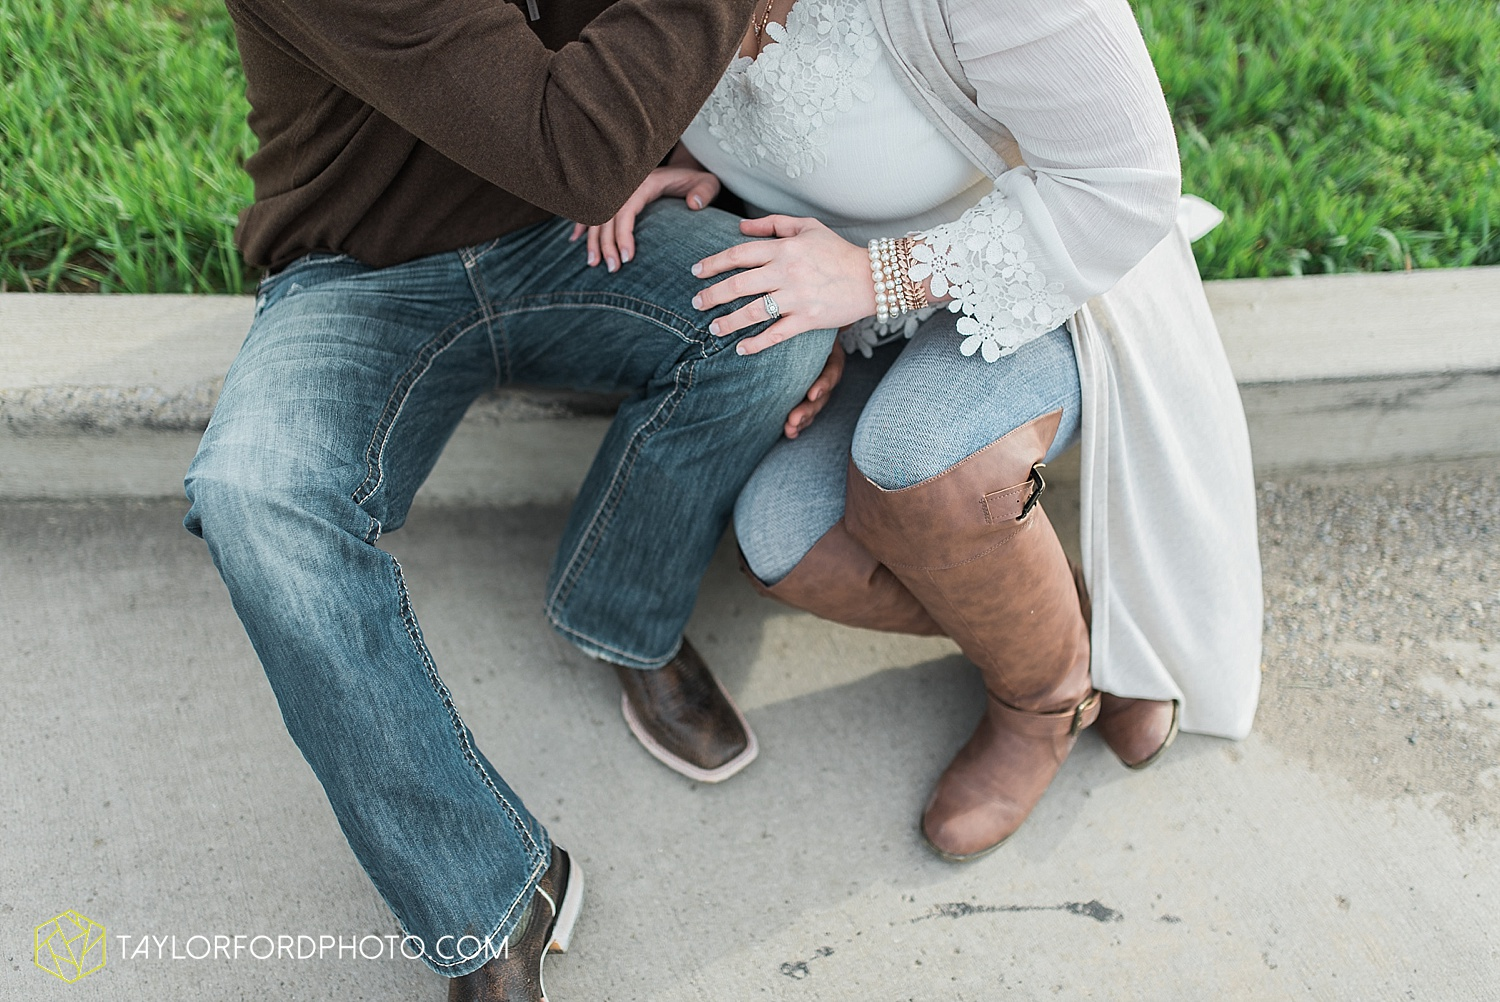 fort-wayne-indiana-engagement-wedding-photographer-taylor-ford-photography_1541.jpg